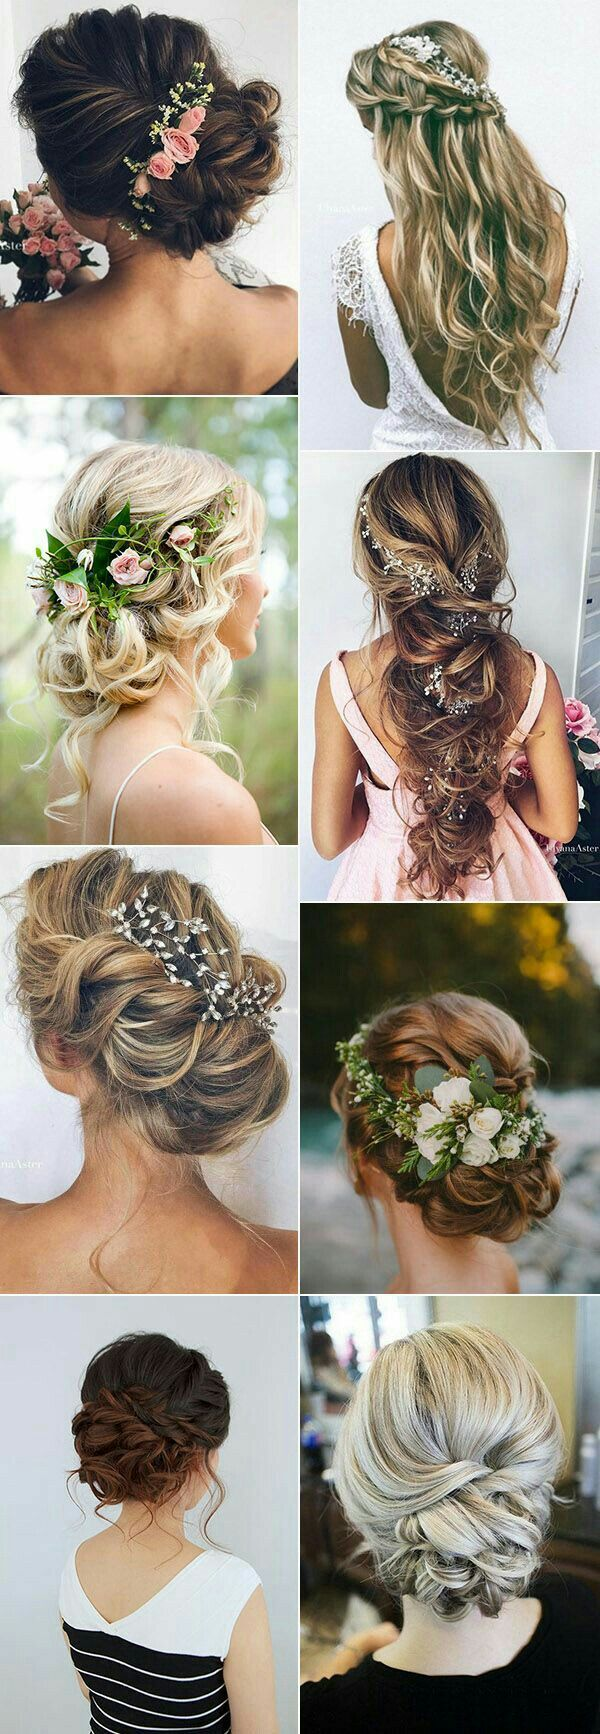 best fashion images on pinterest beleza bridal gowns and hair